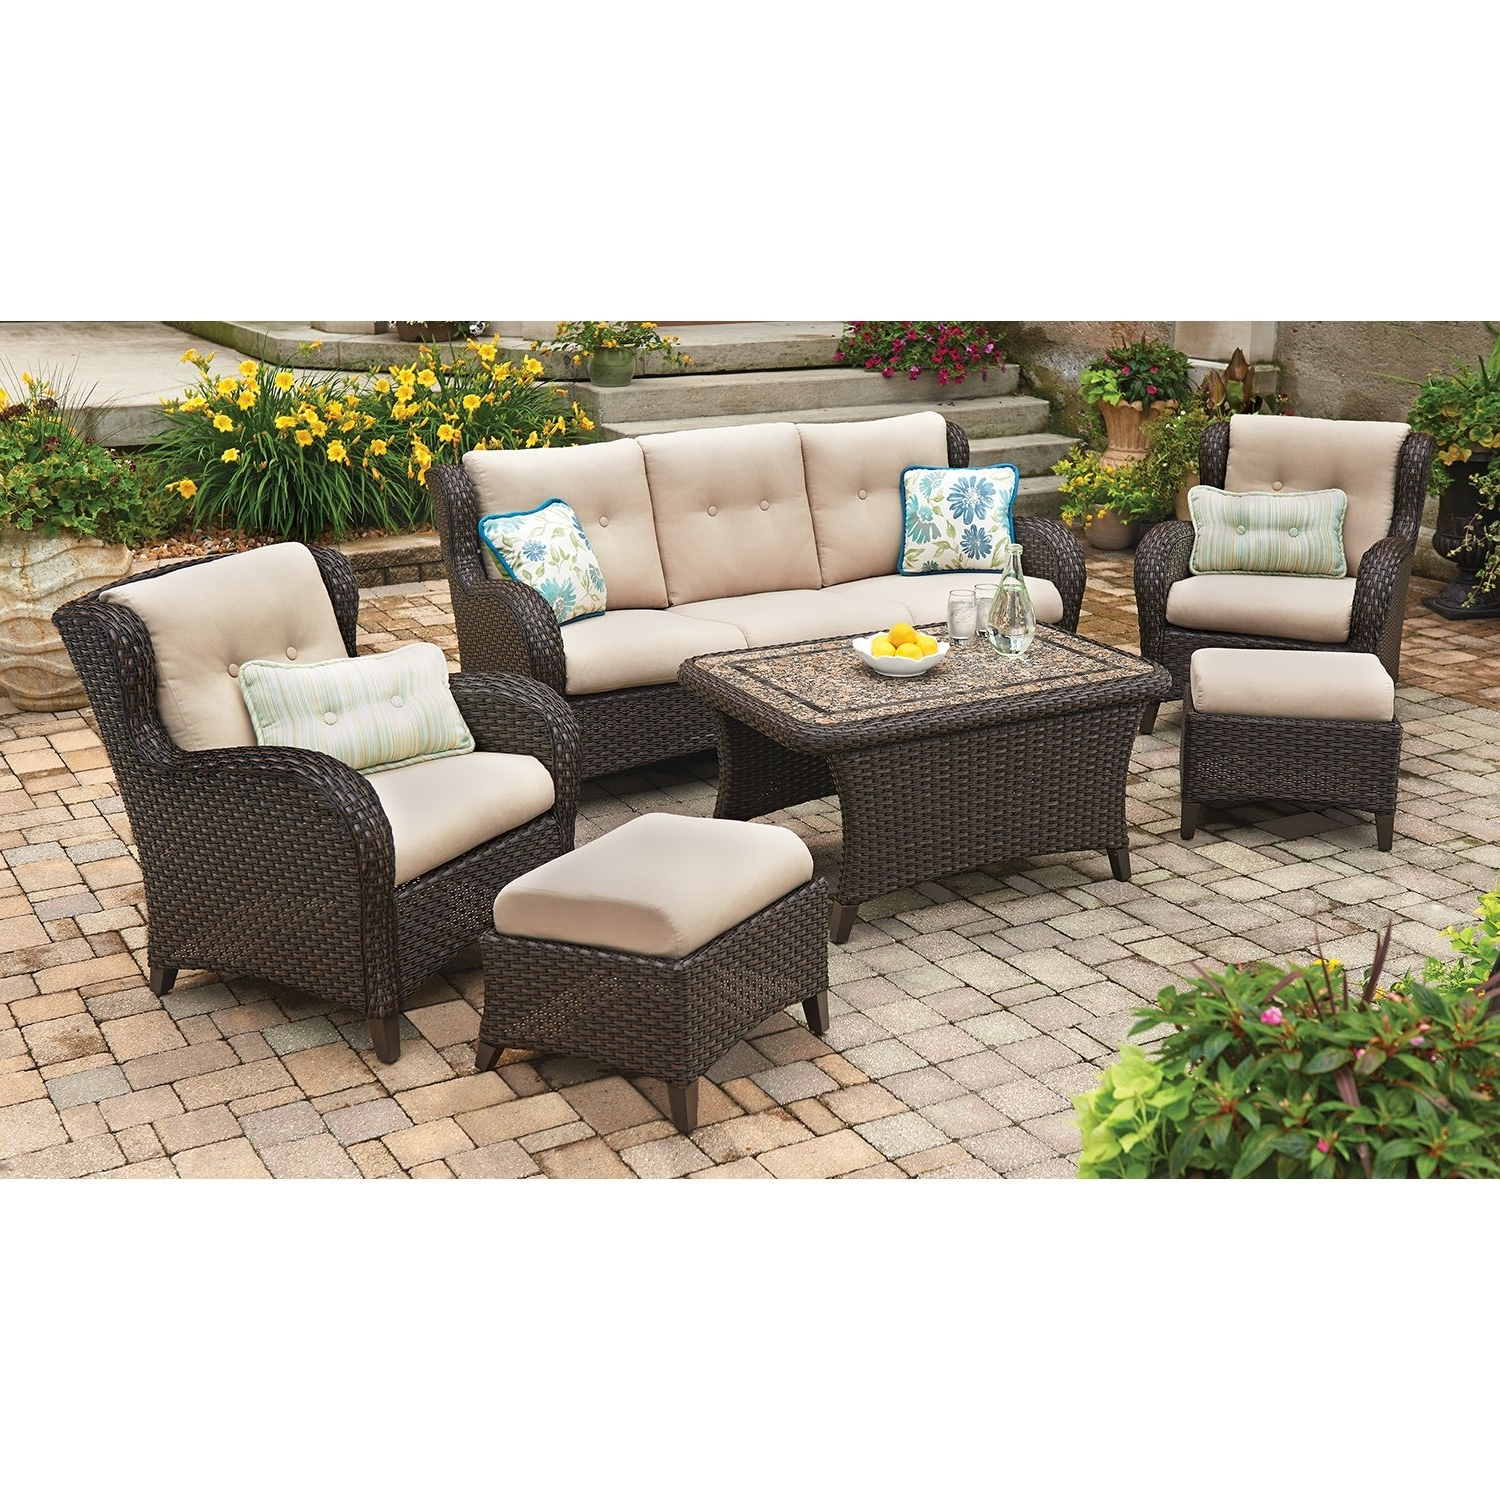 Member's Mark Heritage 6 Piece Deep Seating Set With Premium Throughout Favorite Sam's Club Outdoor Chaise Lounge Chairs (View 10 of 15)